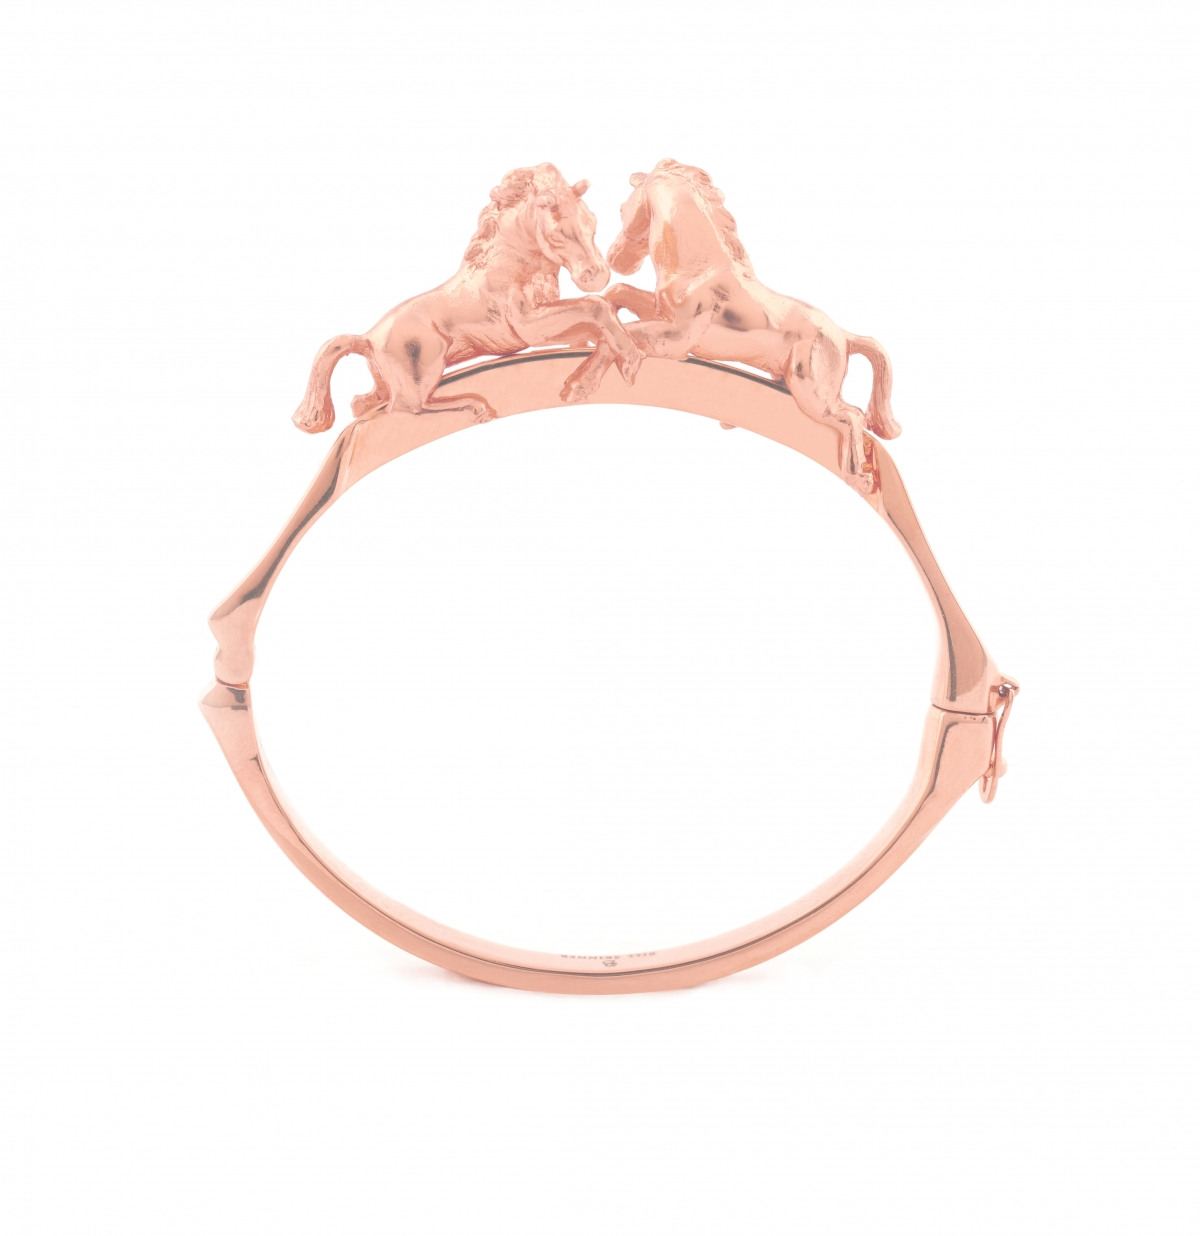 Wild Horse Bangle (Rose Gold)